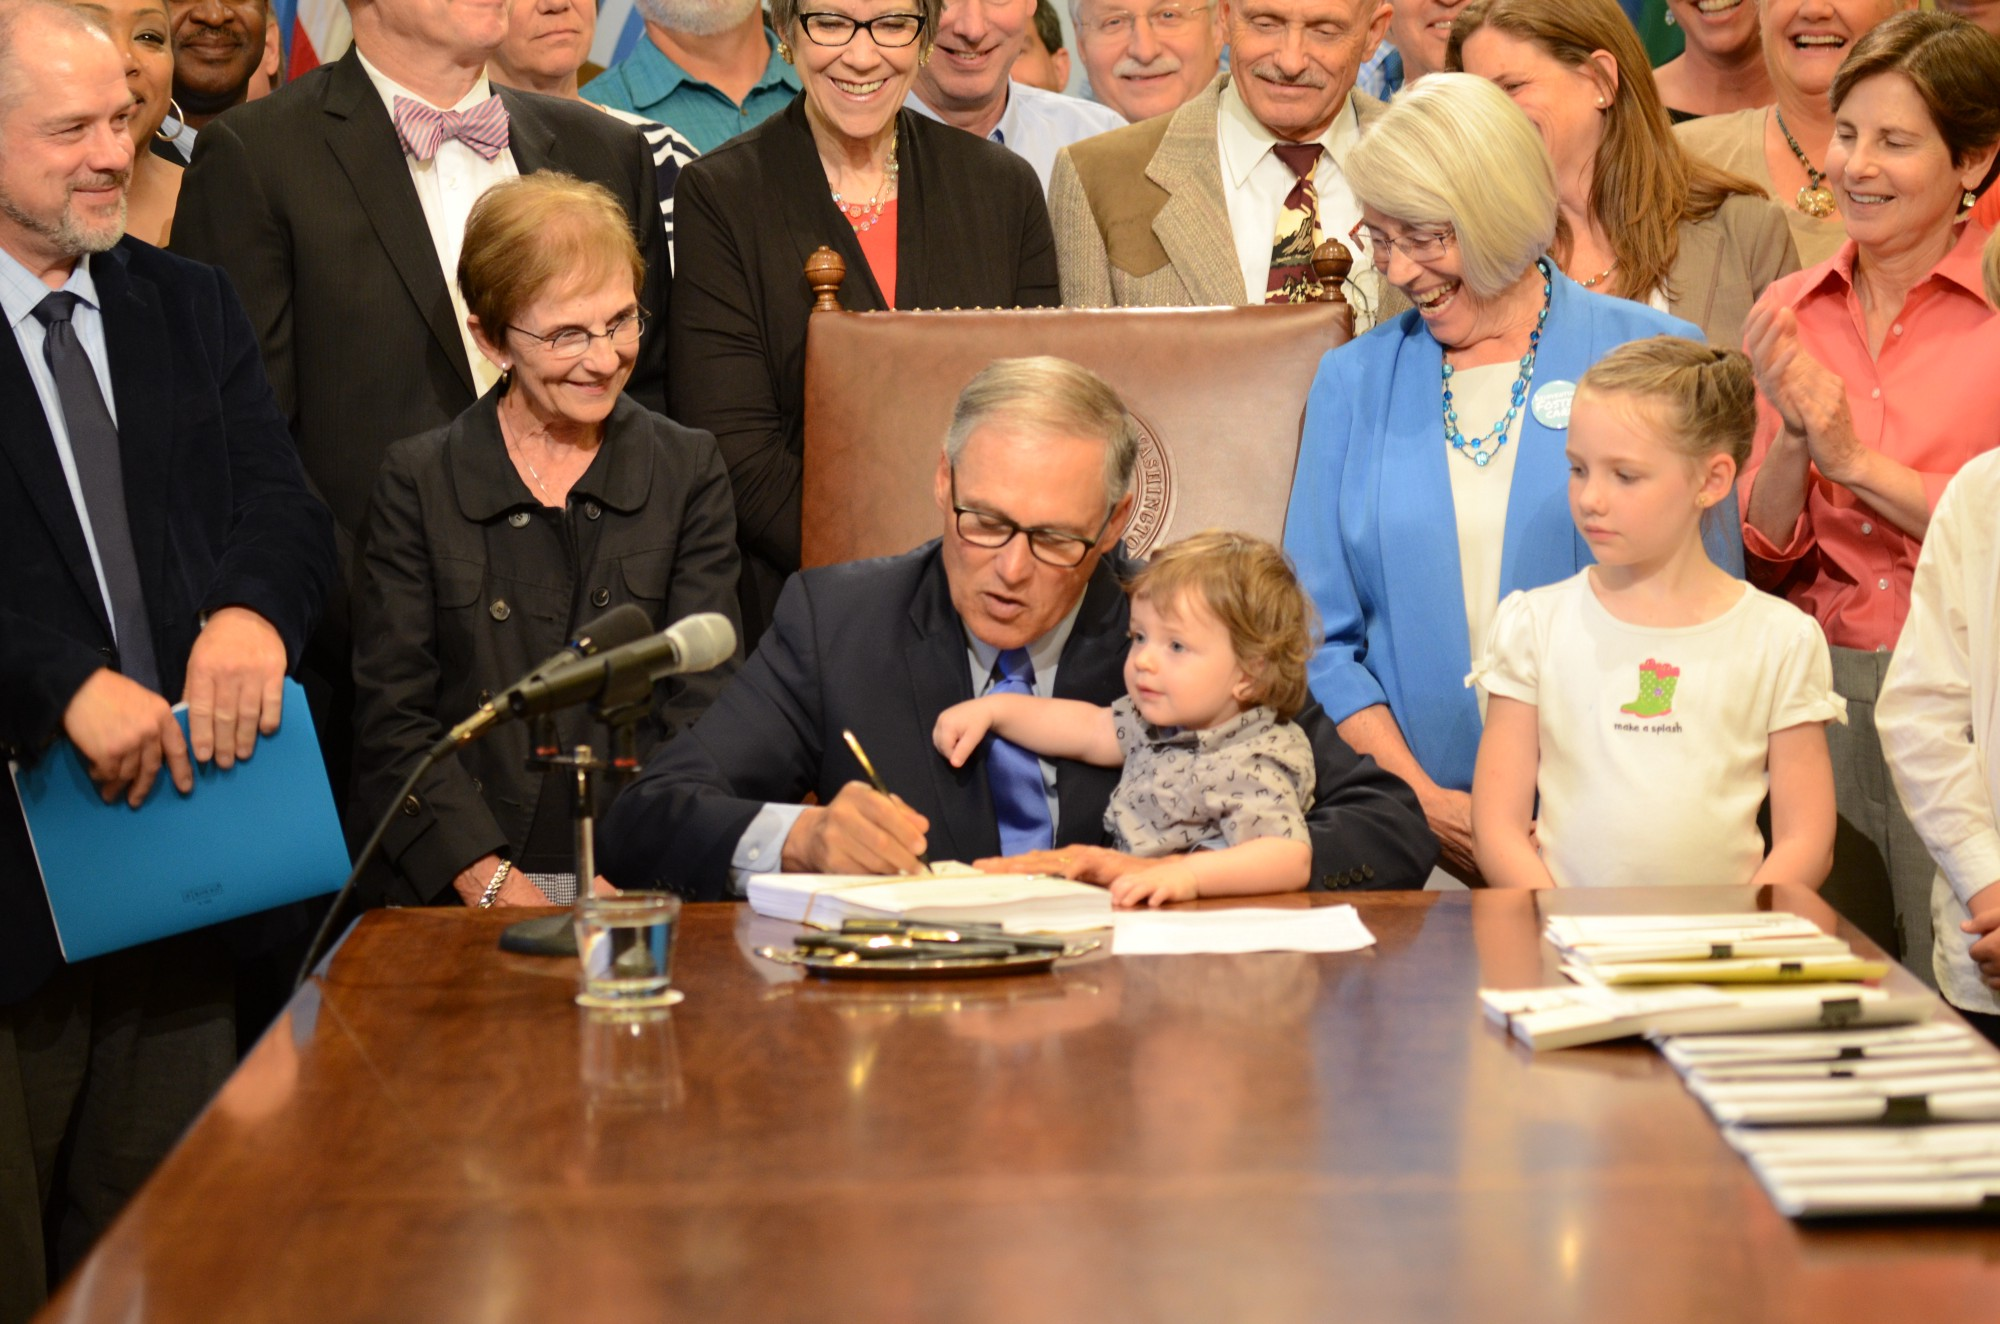 Washington state government for kids - Gov Jay Inslee Signs A Bill Thursday To Create The New Washington State Department Of Children Youth And Families Official Governor S Office Photo